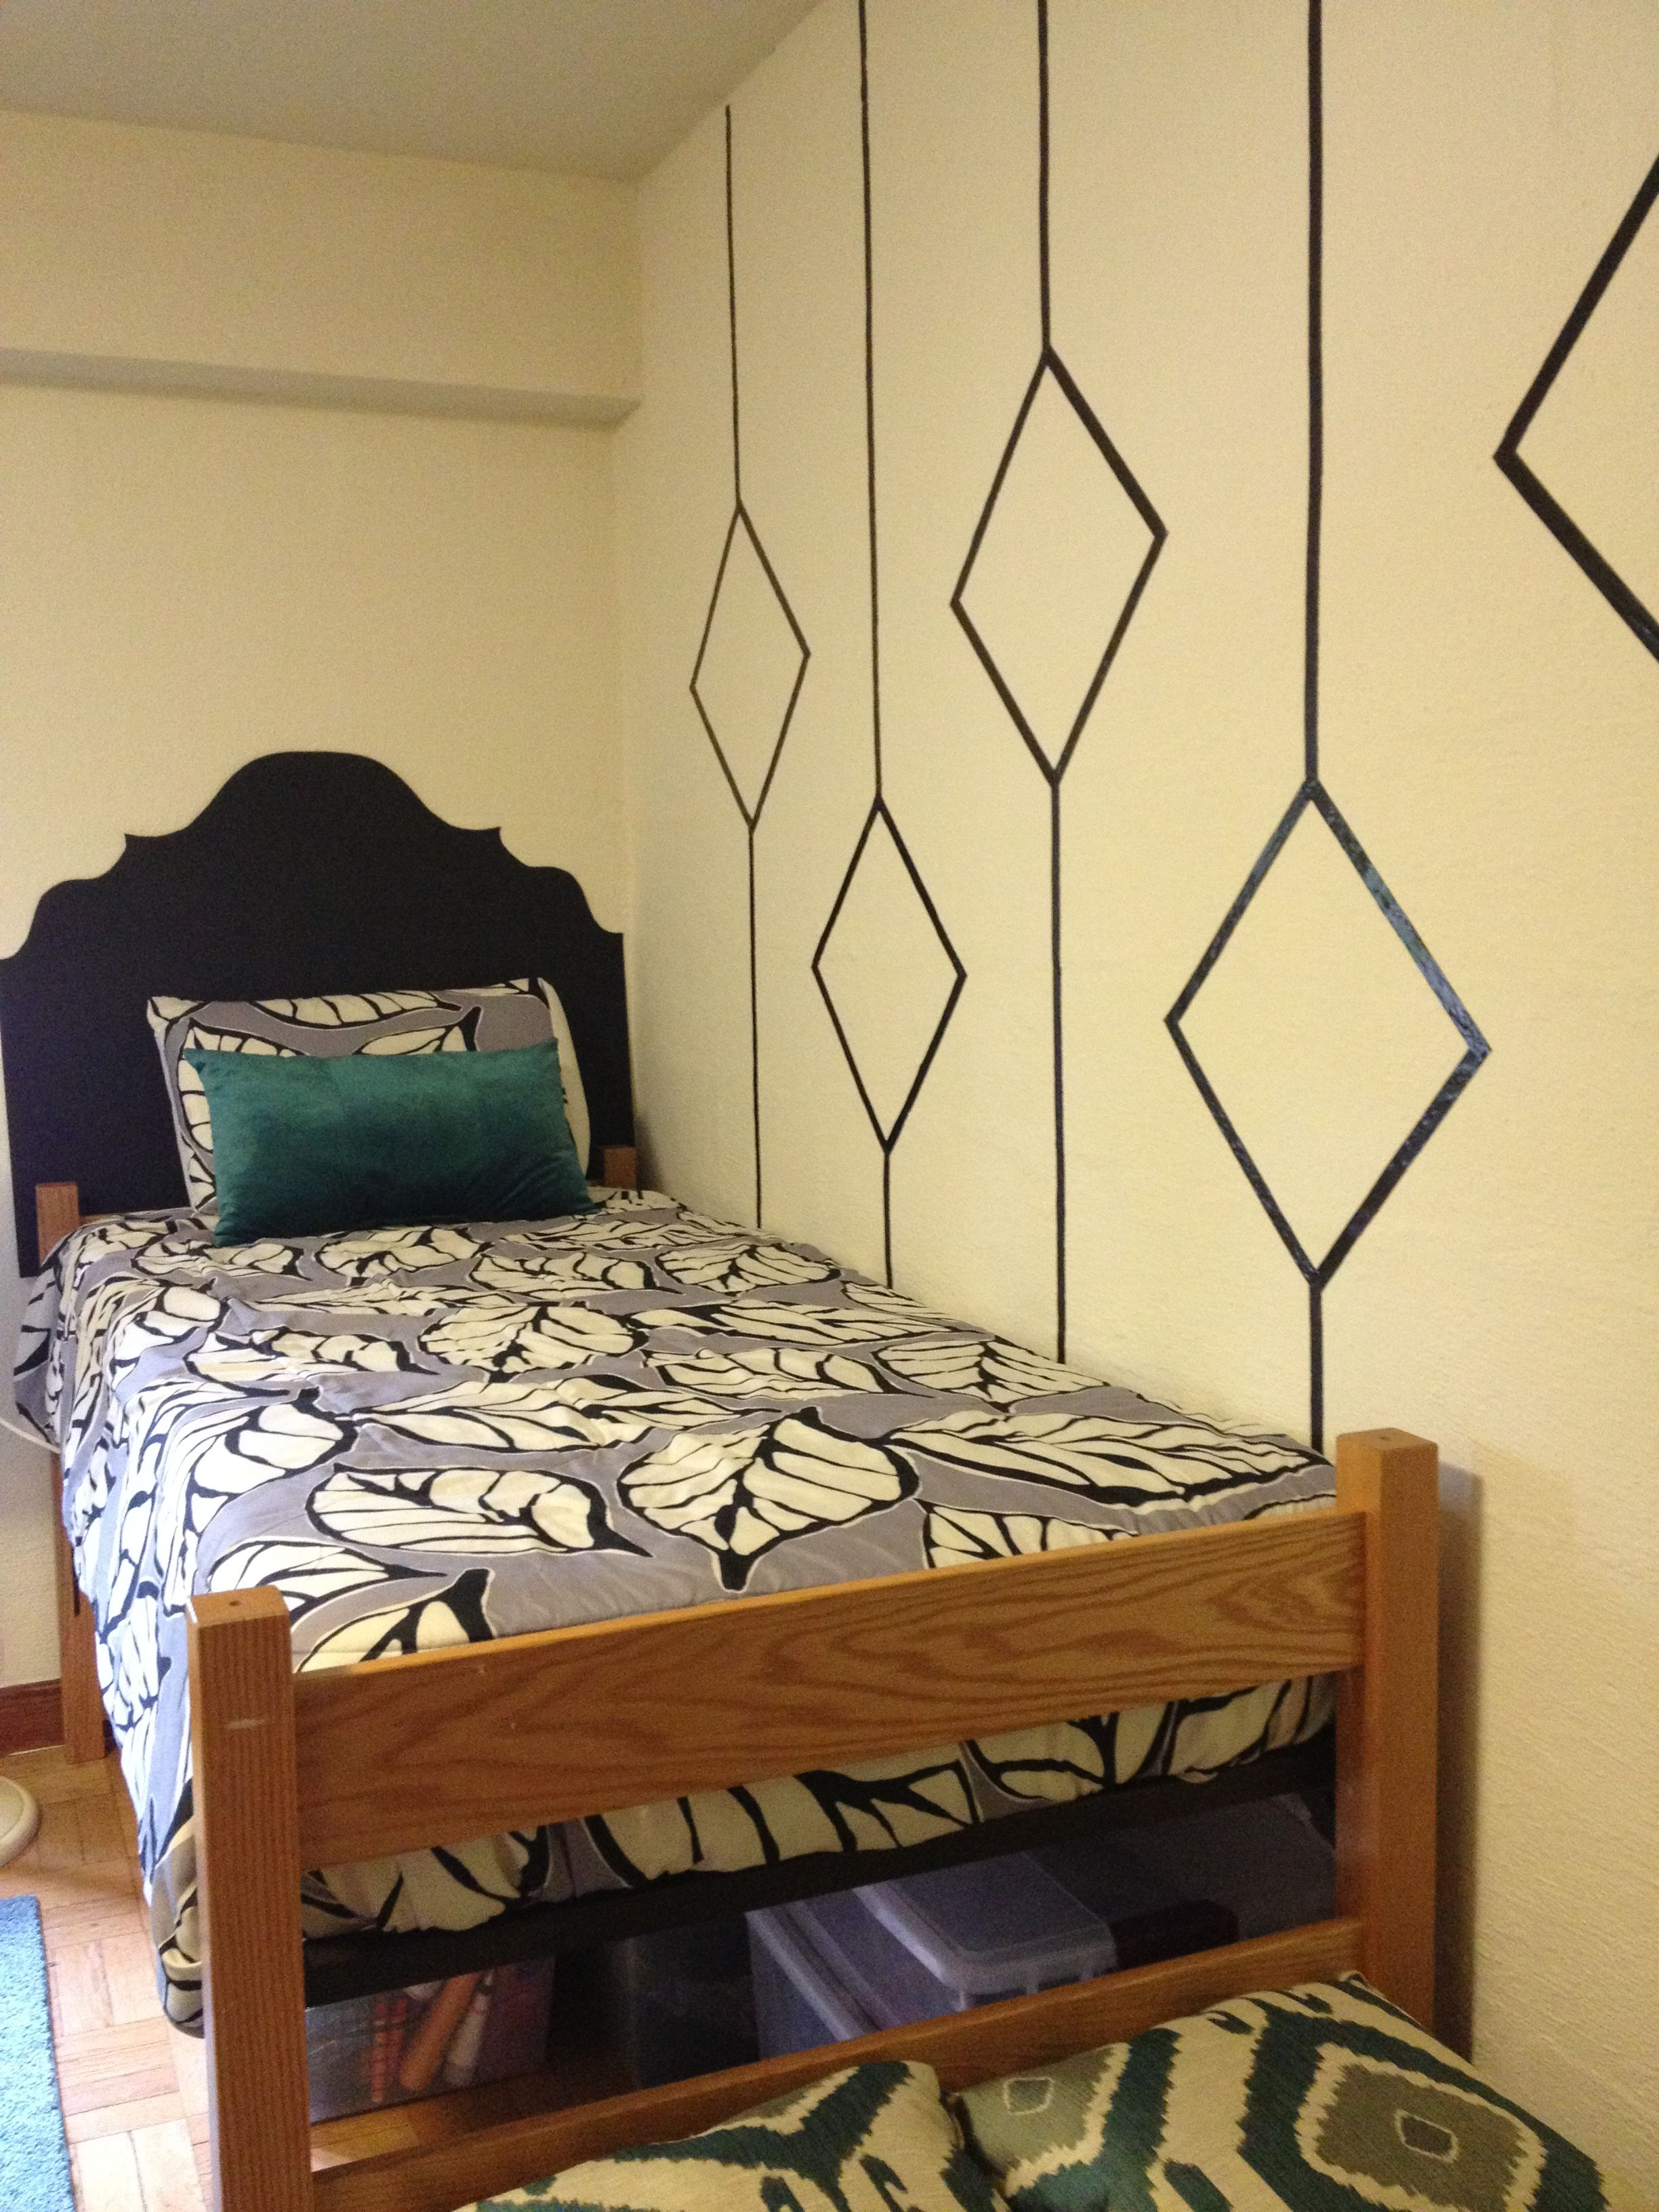 Decorating With Wall Art Dorm Wall Decorations On Pinterest Dorm Shelves Photo